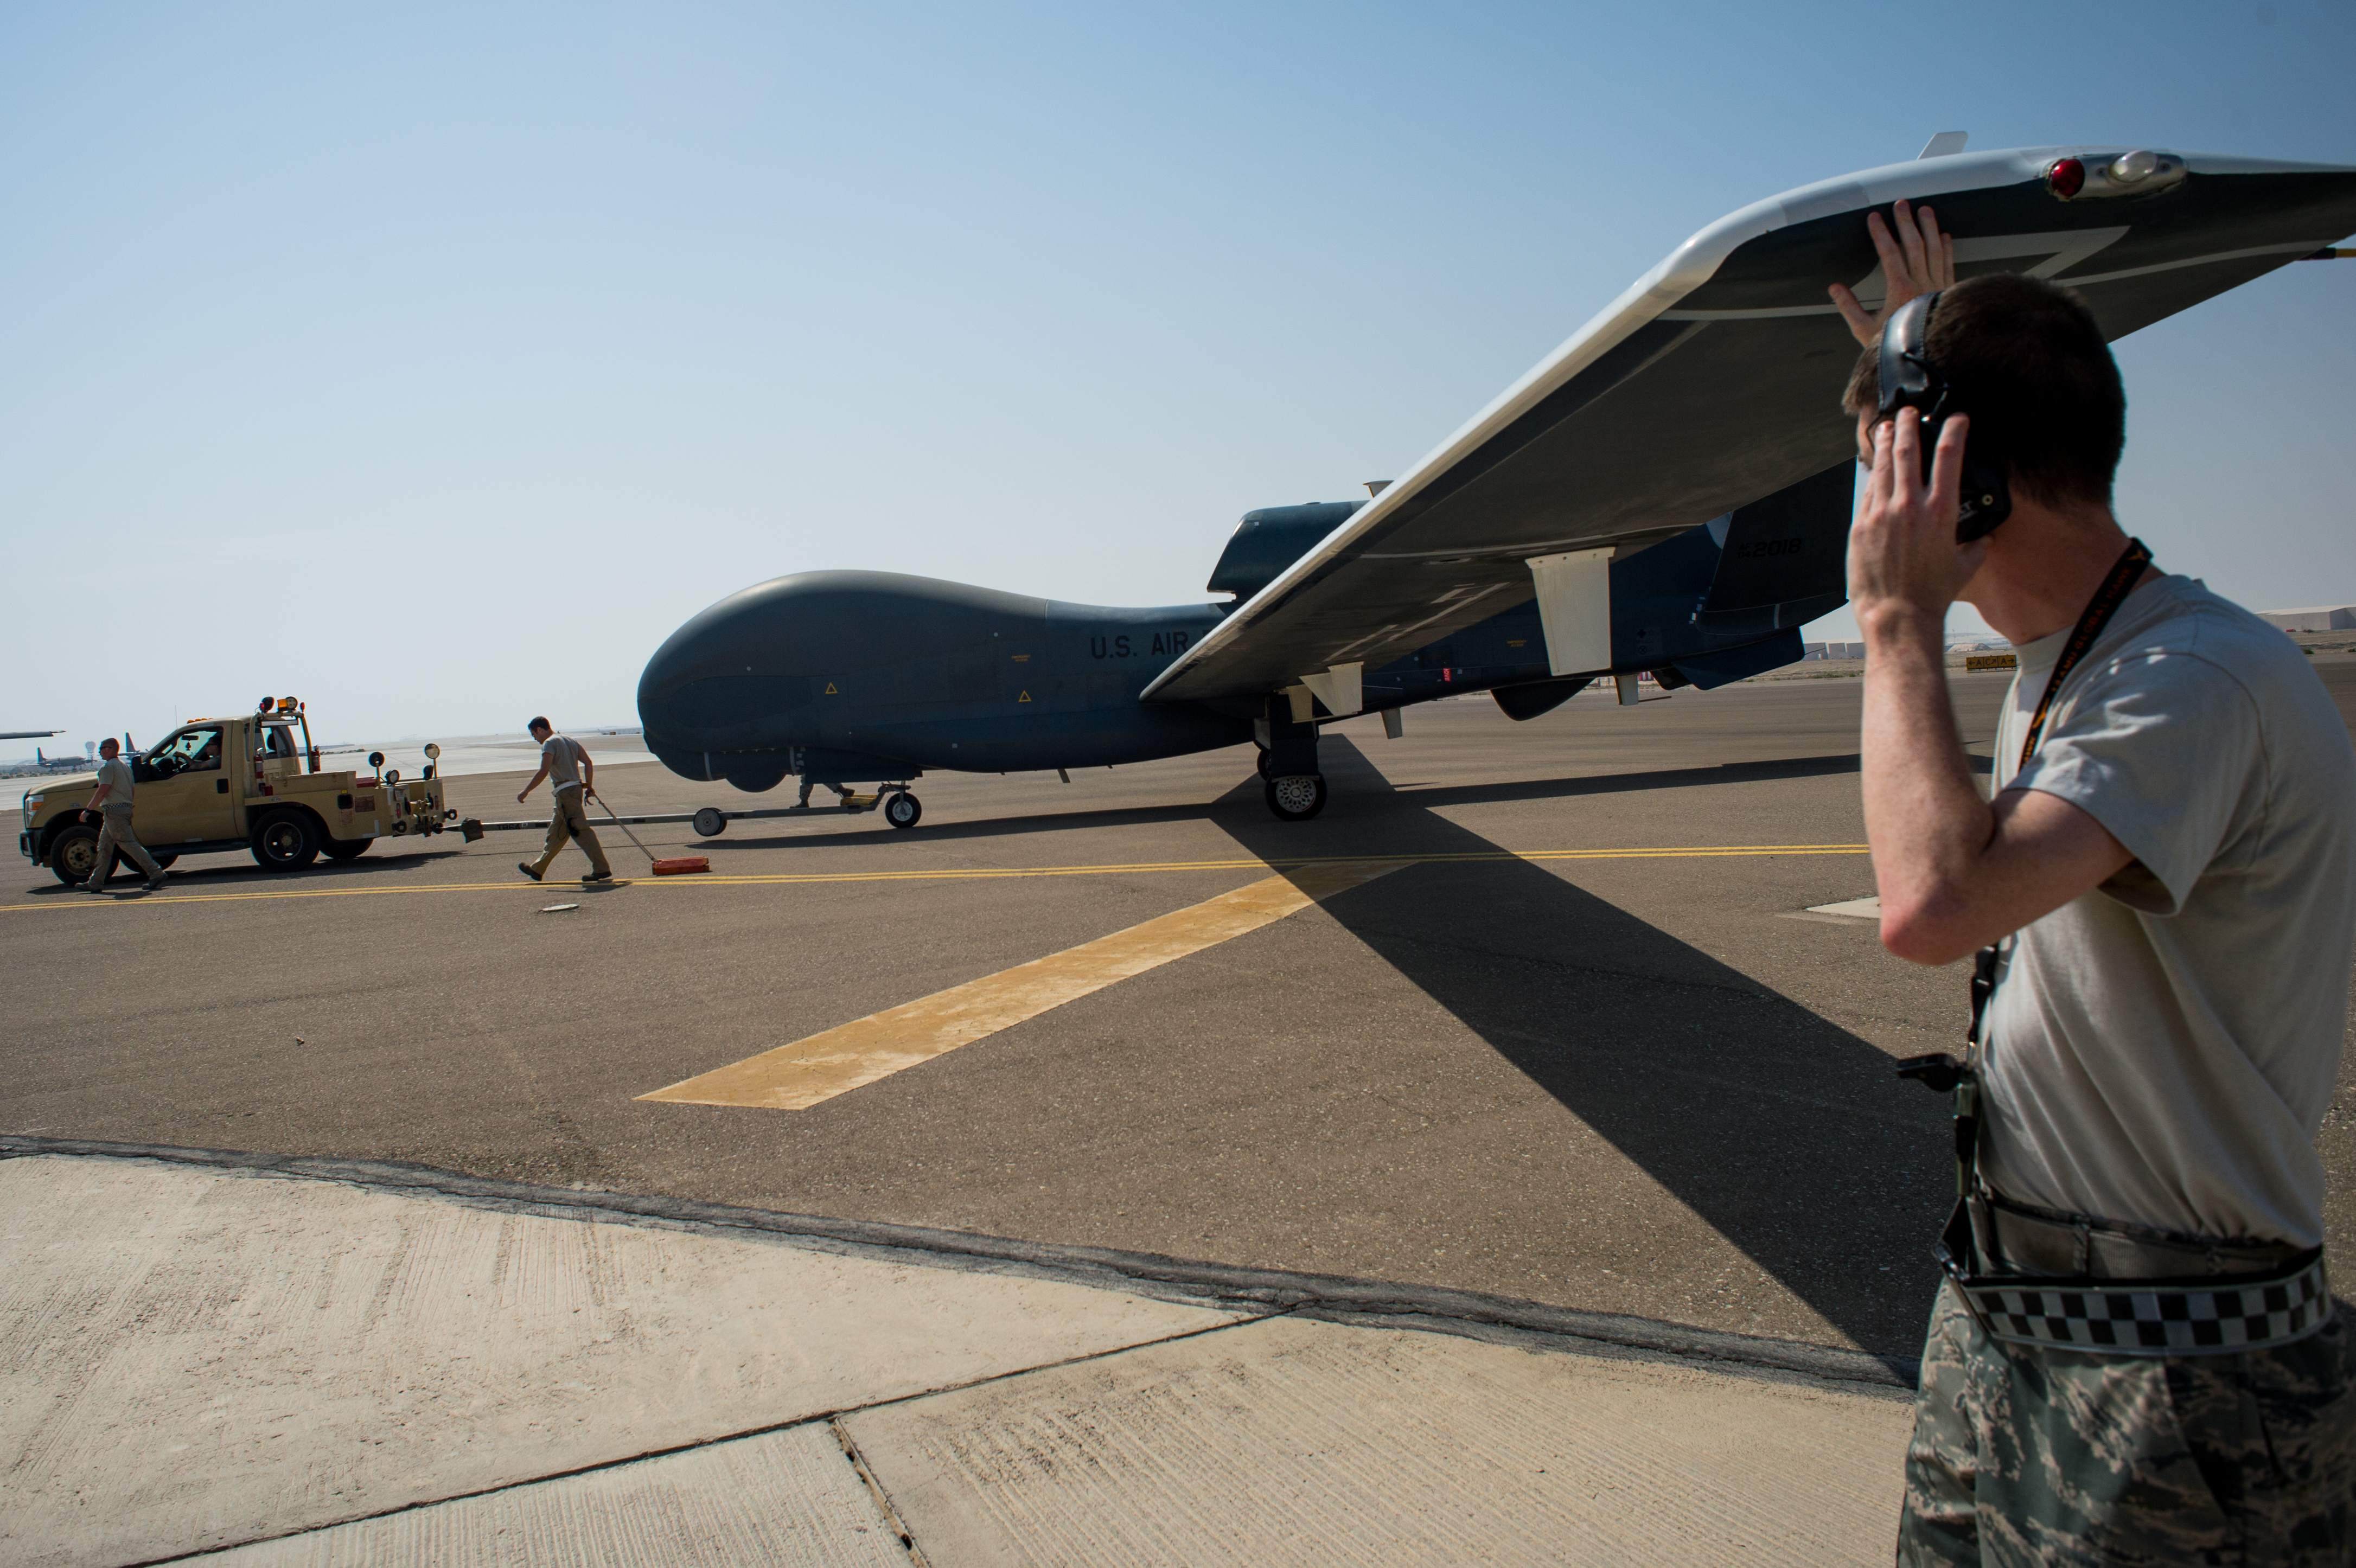 Members of the 380th Expeditionary Maintenance Squadron complete post-flight checks on an EQ-4 Global Hawk equipped with a battlefield airborne communications node at an undisclosed location in Southwest Asia on April 1, 2017. (Senior Airman Tyler Woodward/U.S. Air Force)